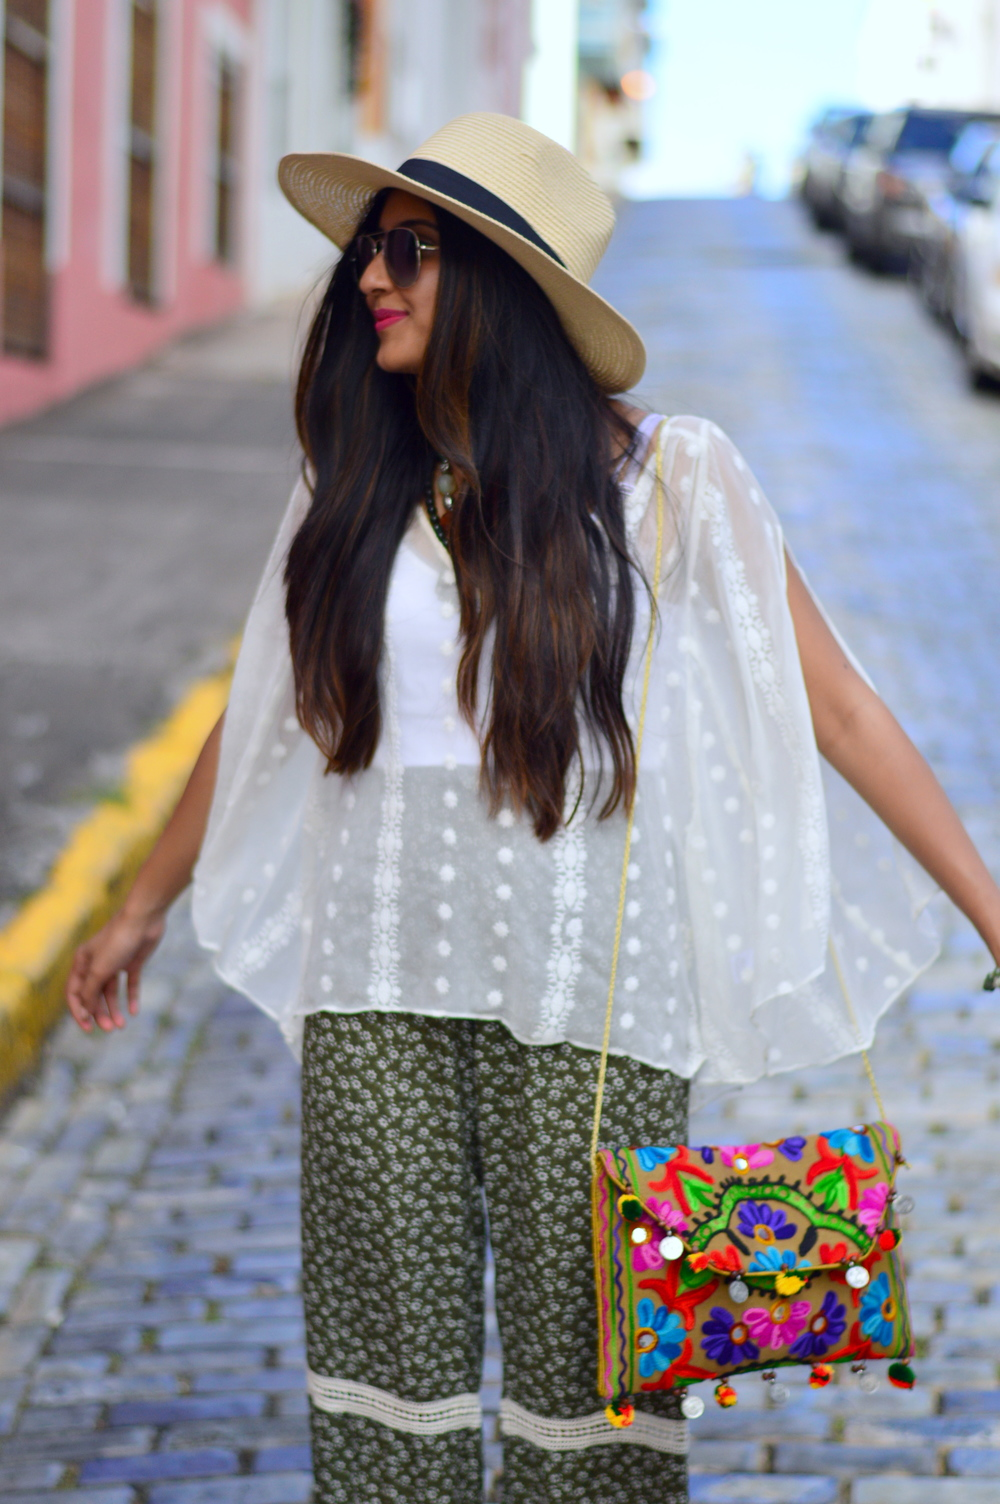 hippie-chic-festival-style-bohemian-outfit